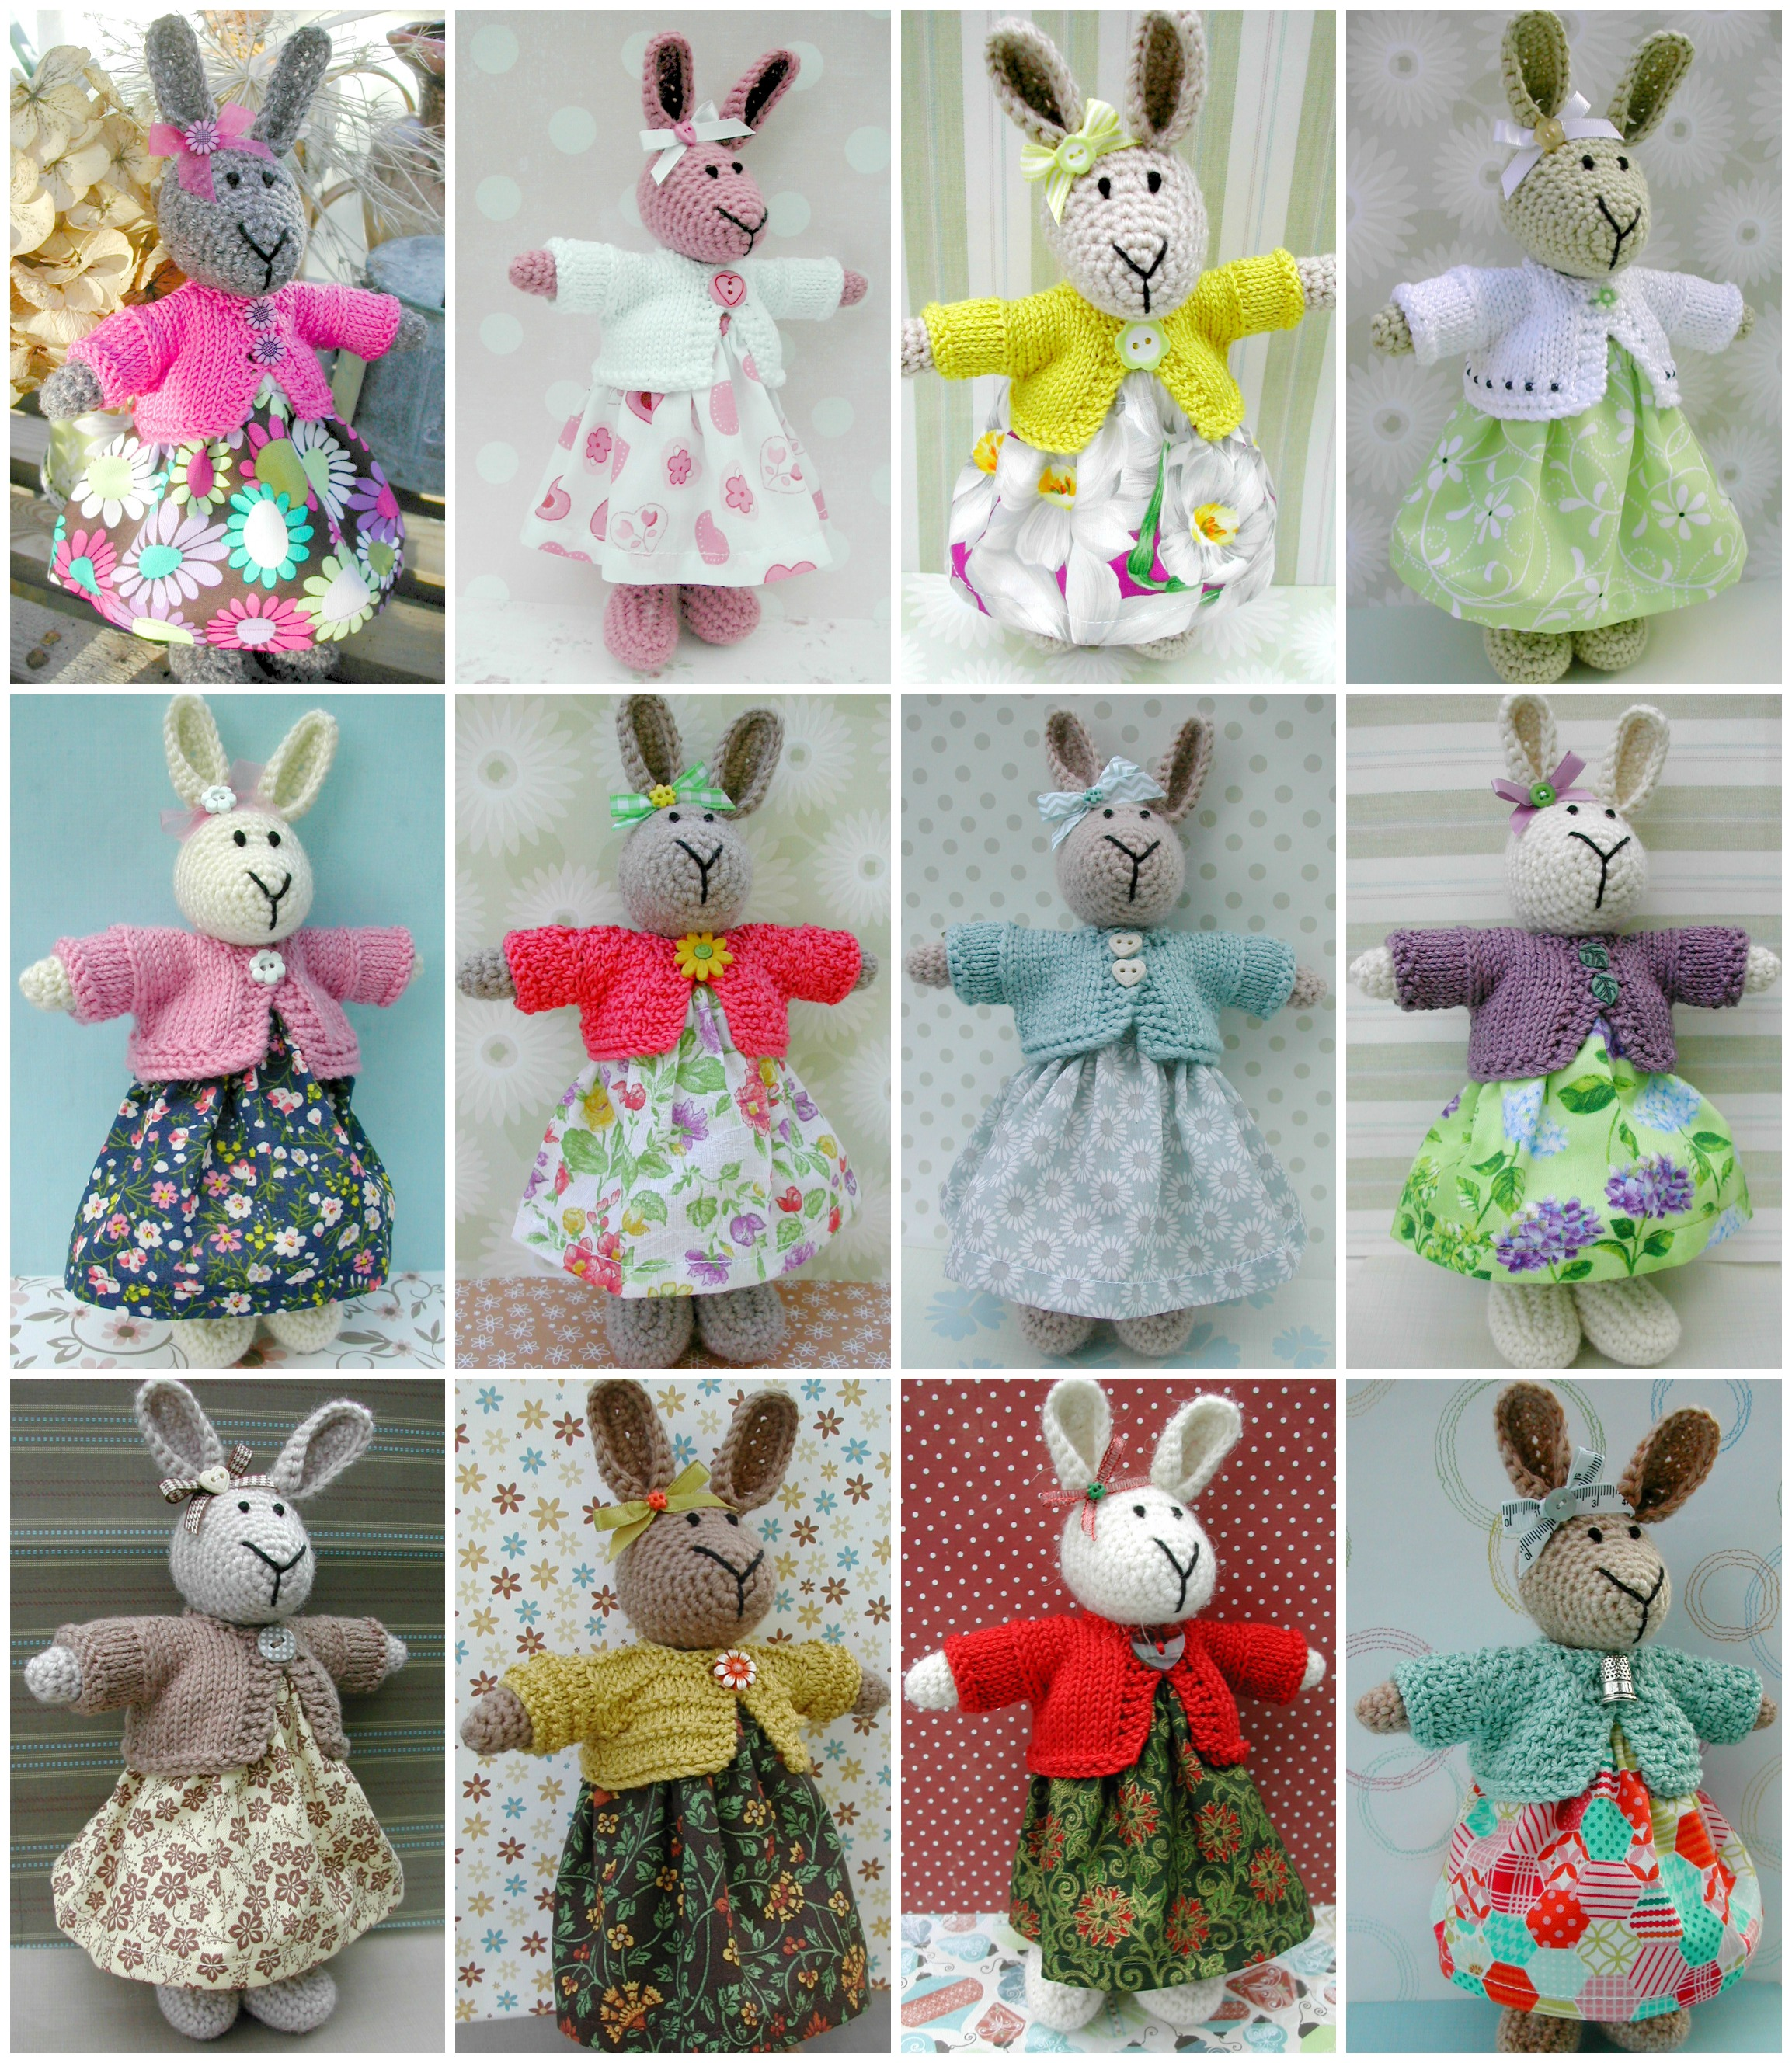 2013 bunny review Collage